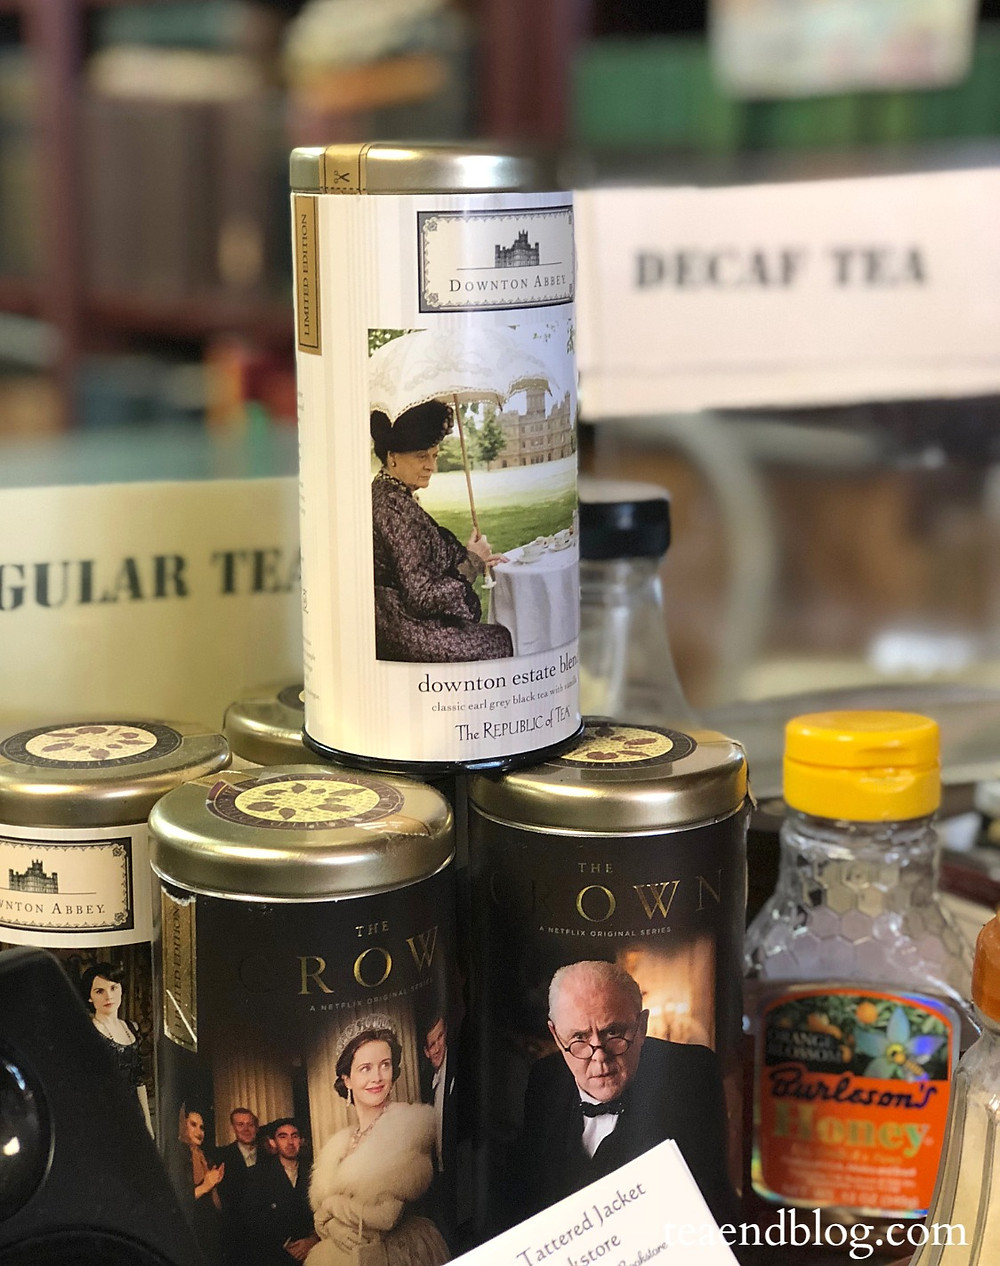 Various teas on the check-out counter of The Tattered Jacket Bookstore